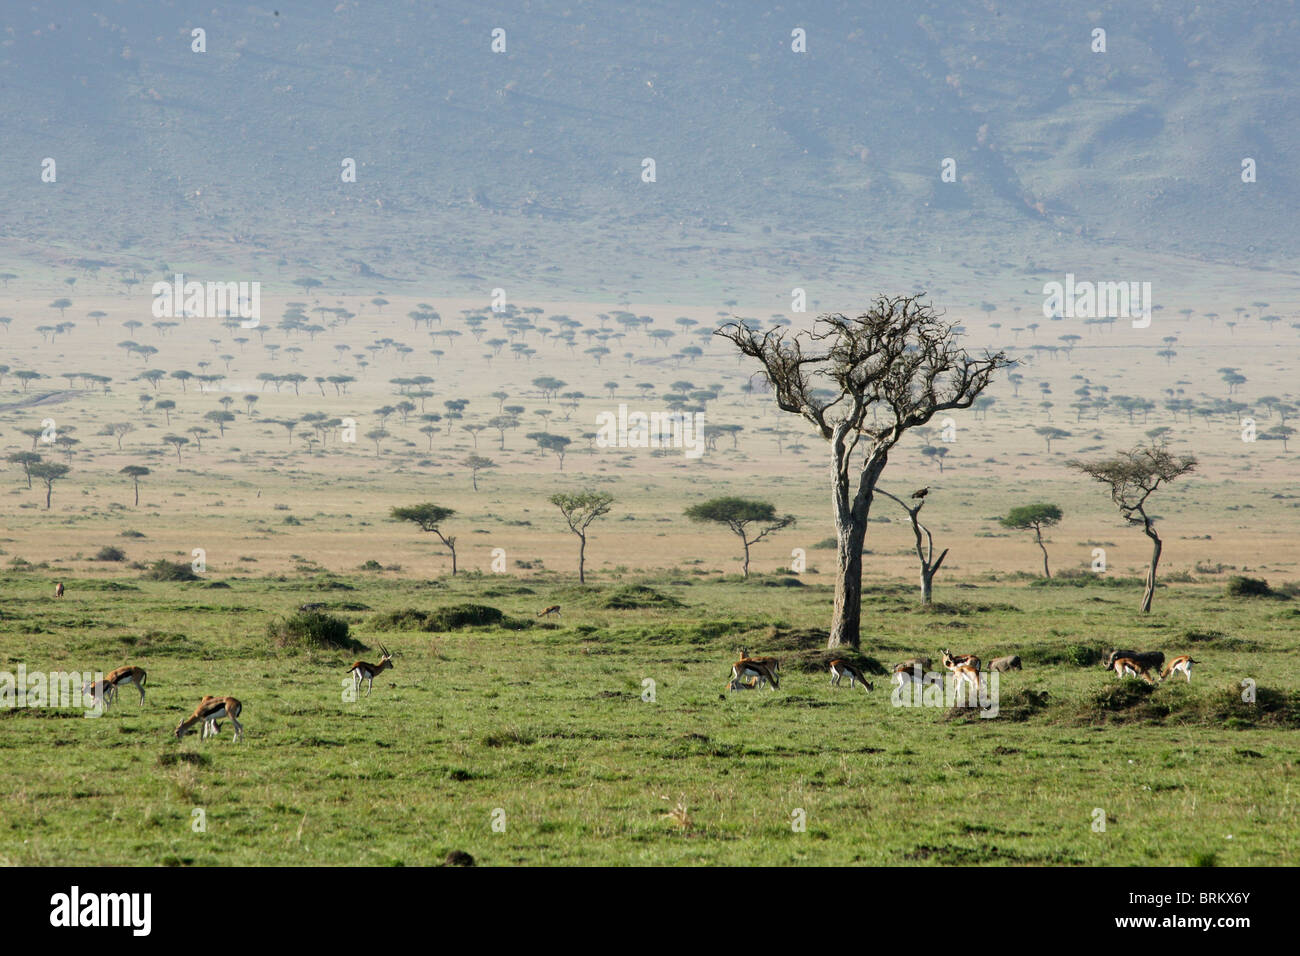 Herd of Thompson gazelle grazing on the Masai Mara plains - Stock Image